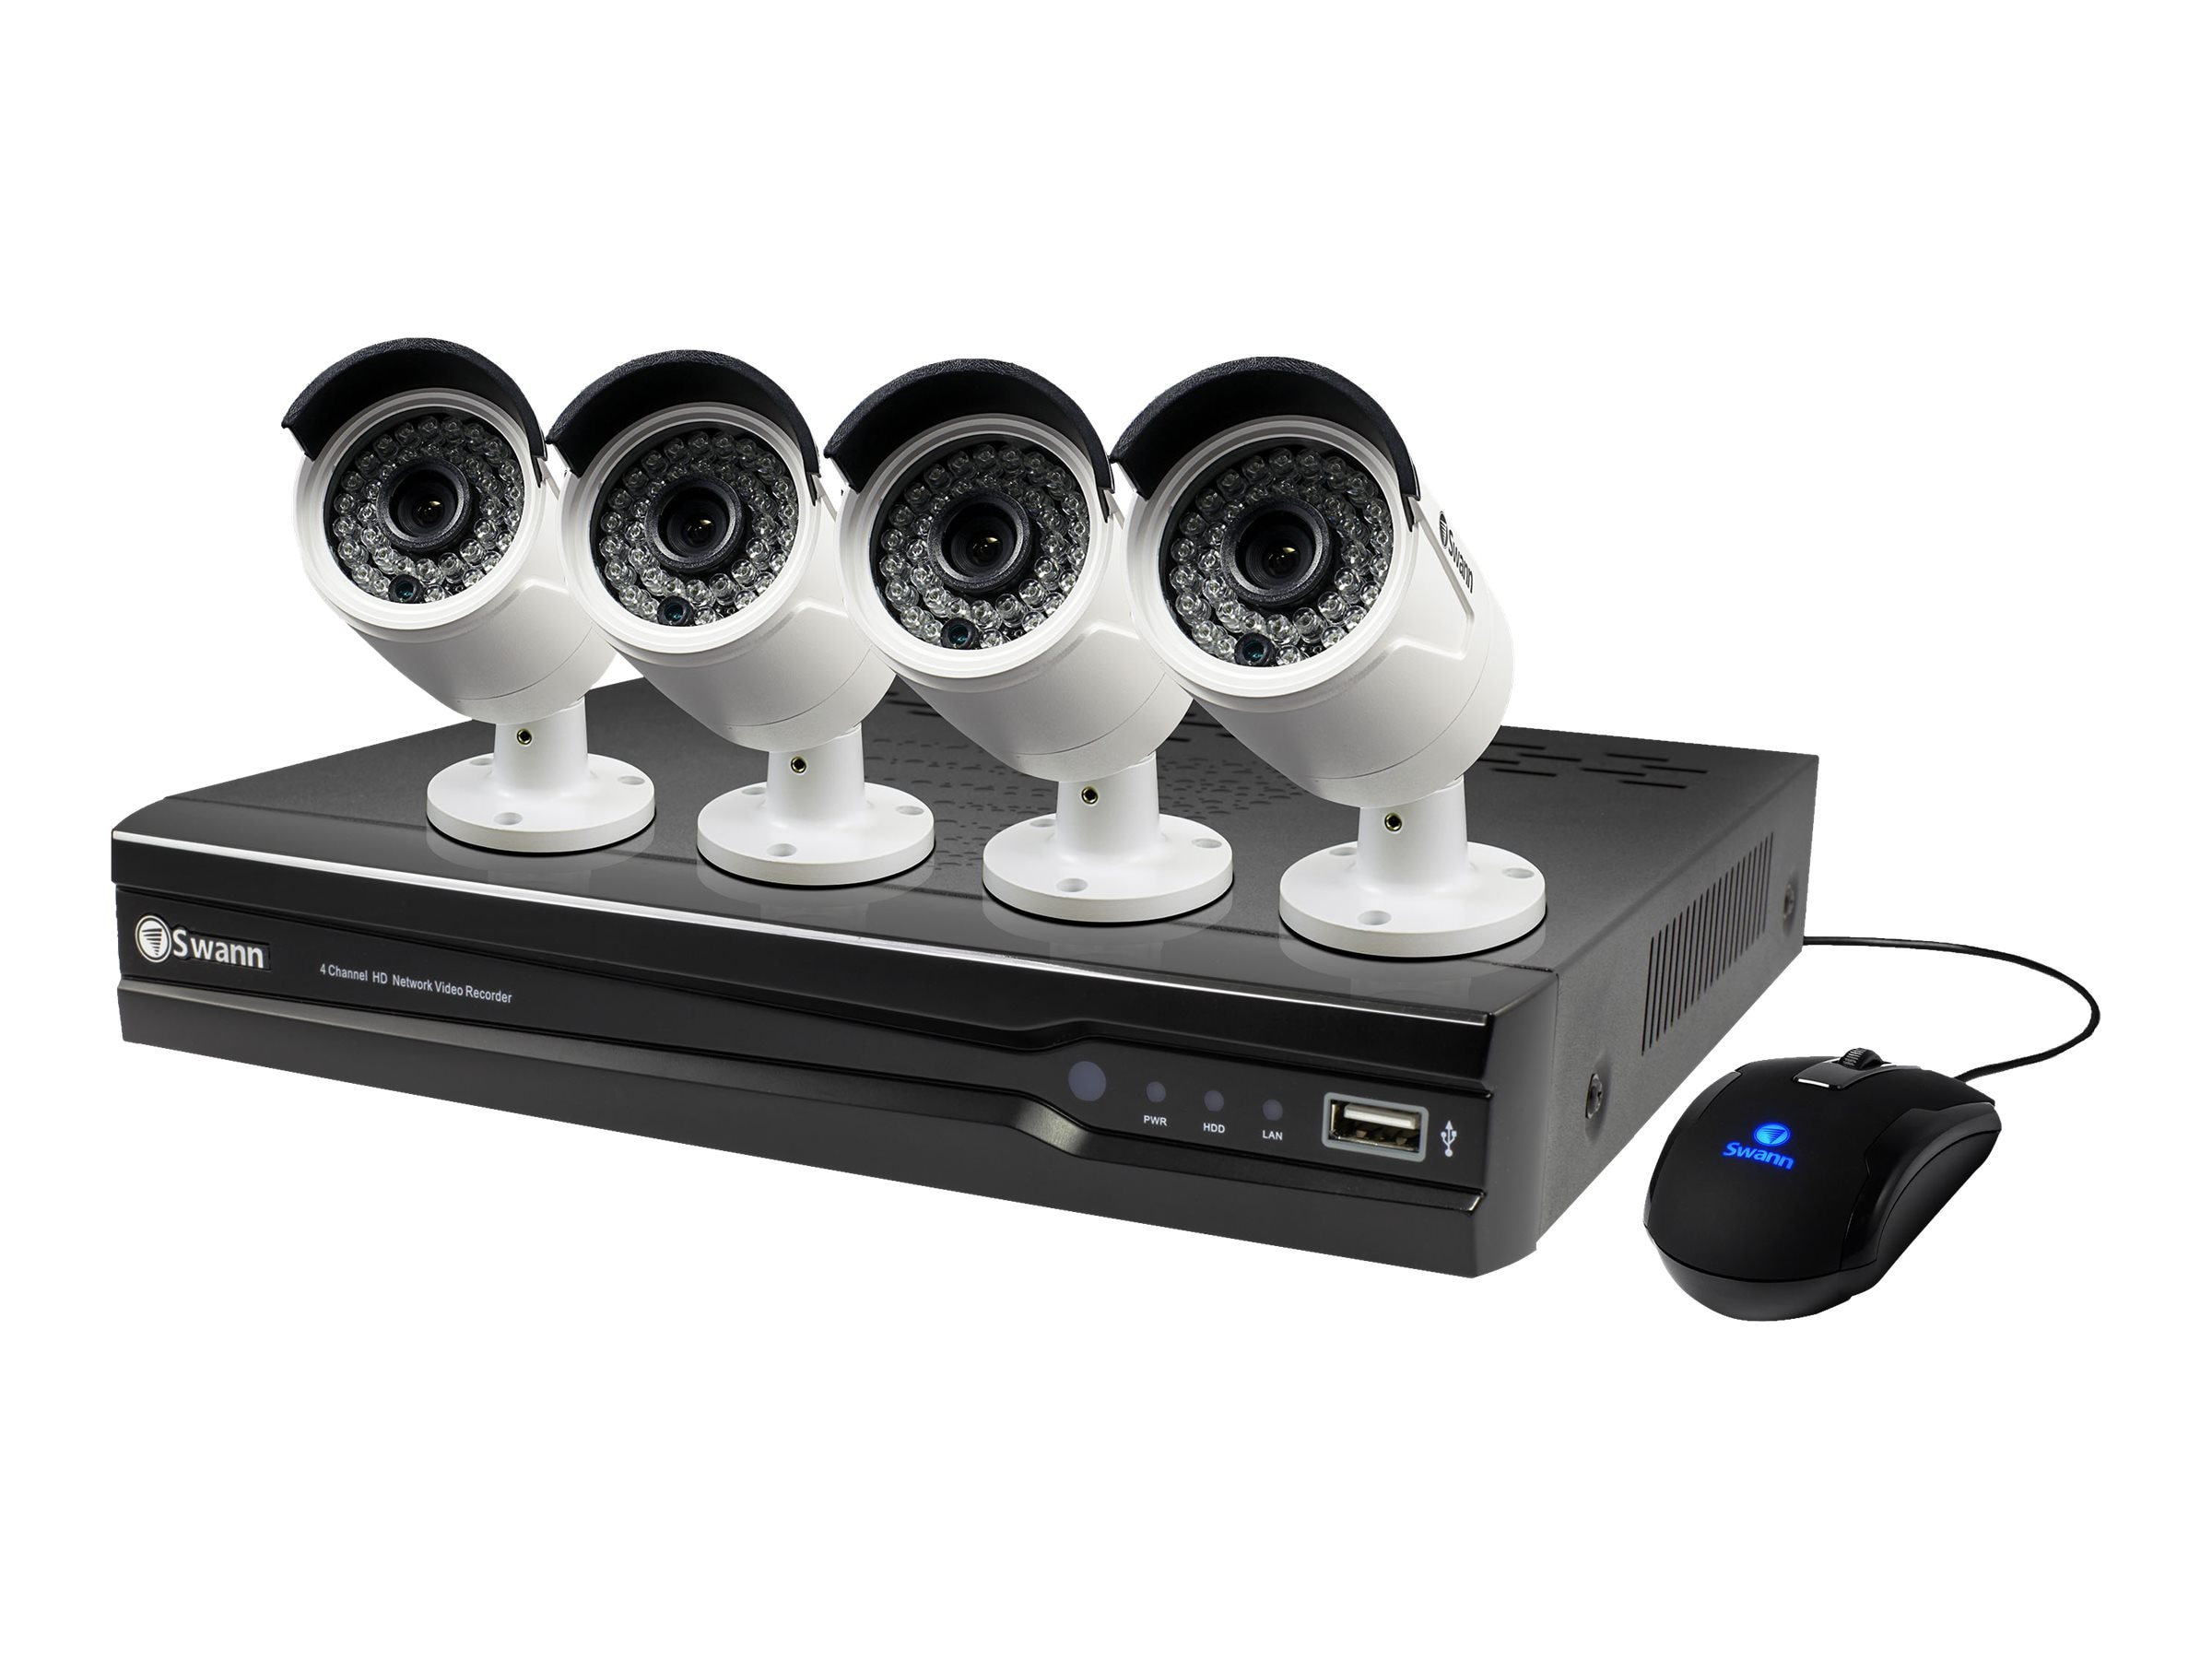 Swann 8-Channel NVR with 4x 3MP Camera, 2TB HDD, SWNVK-873004-US, 30948847, Video Capture Hardware